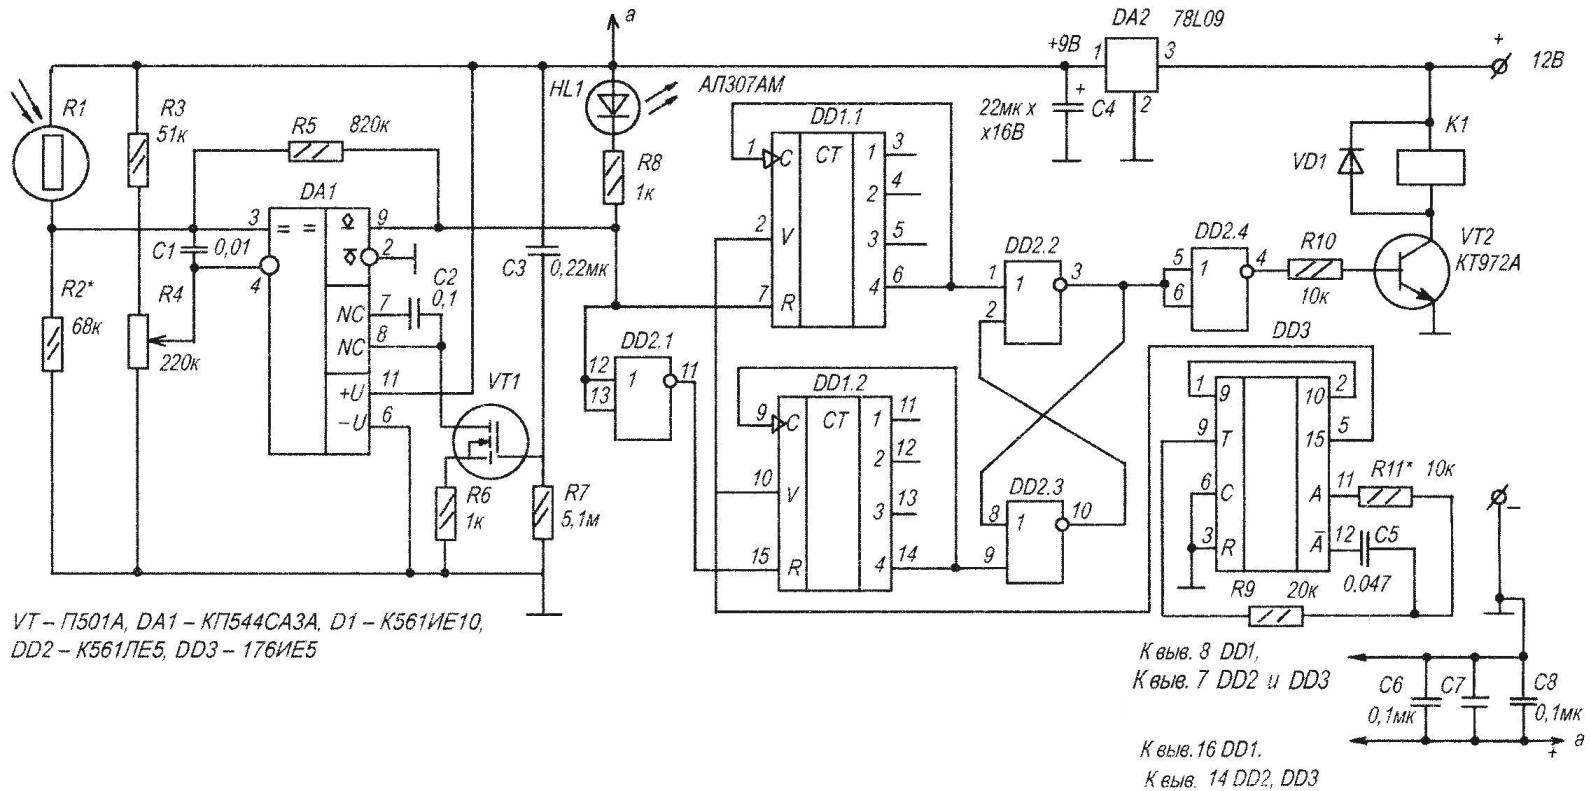 A circuit diagram of a photocell with increased protection against false positives